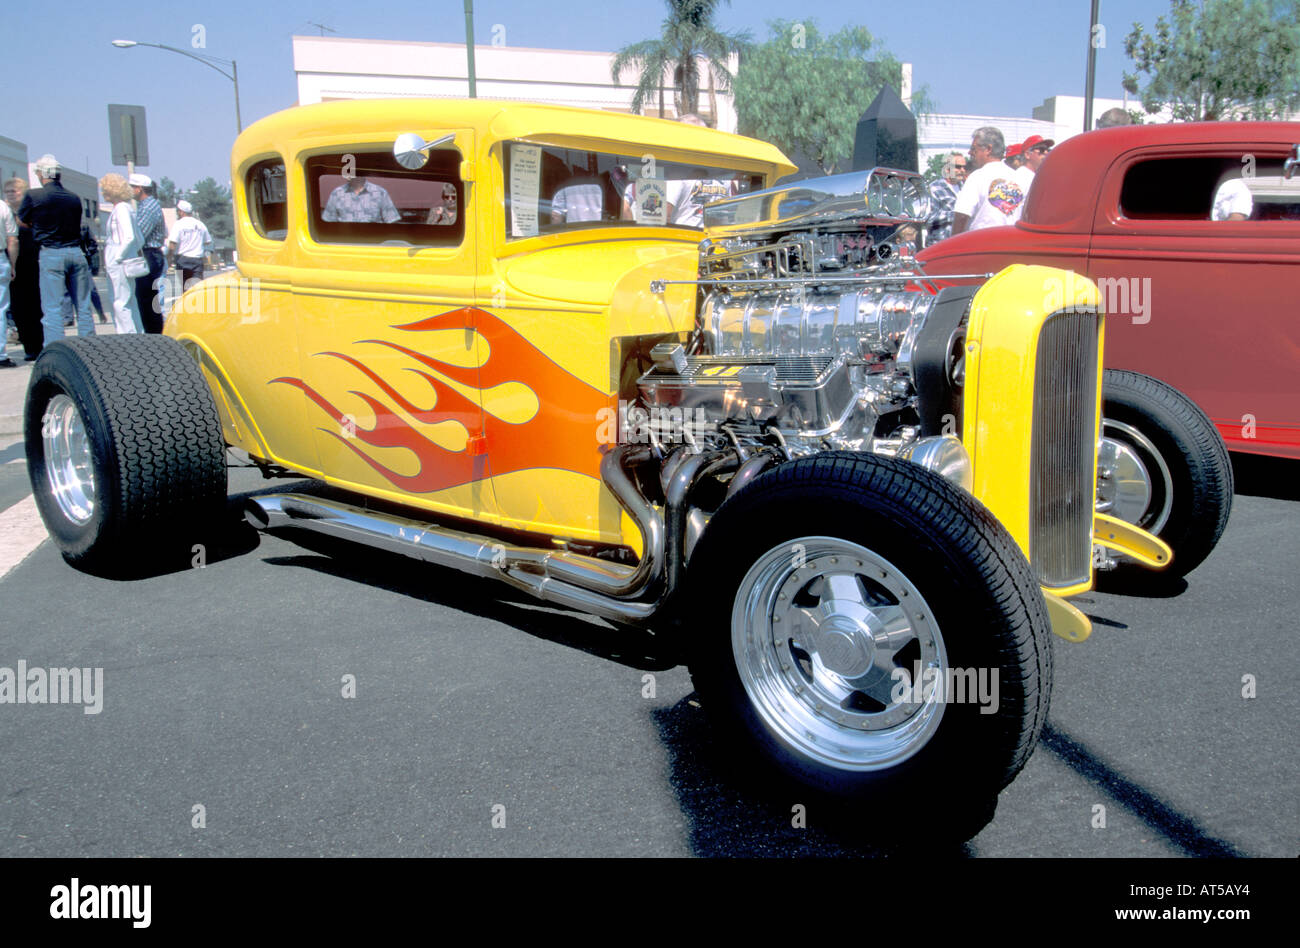 Yellow with red flames supercharged V8 hot rod coupe Stock Photo ...